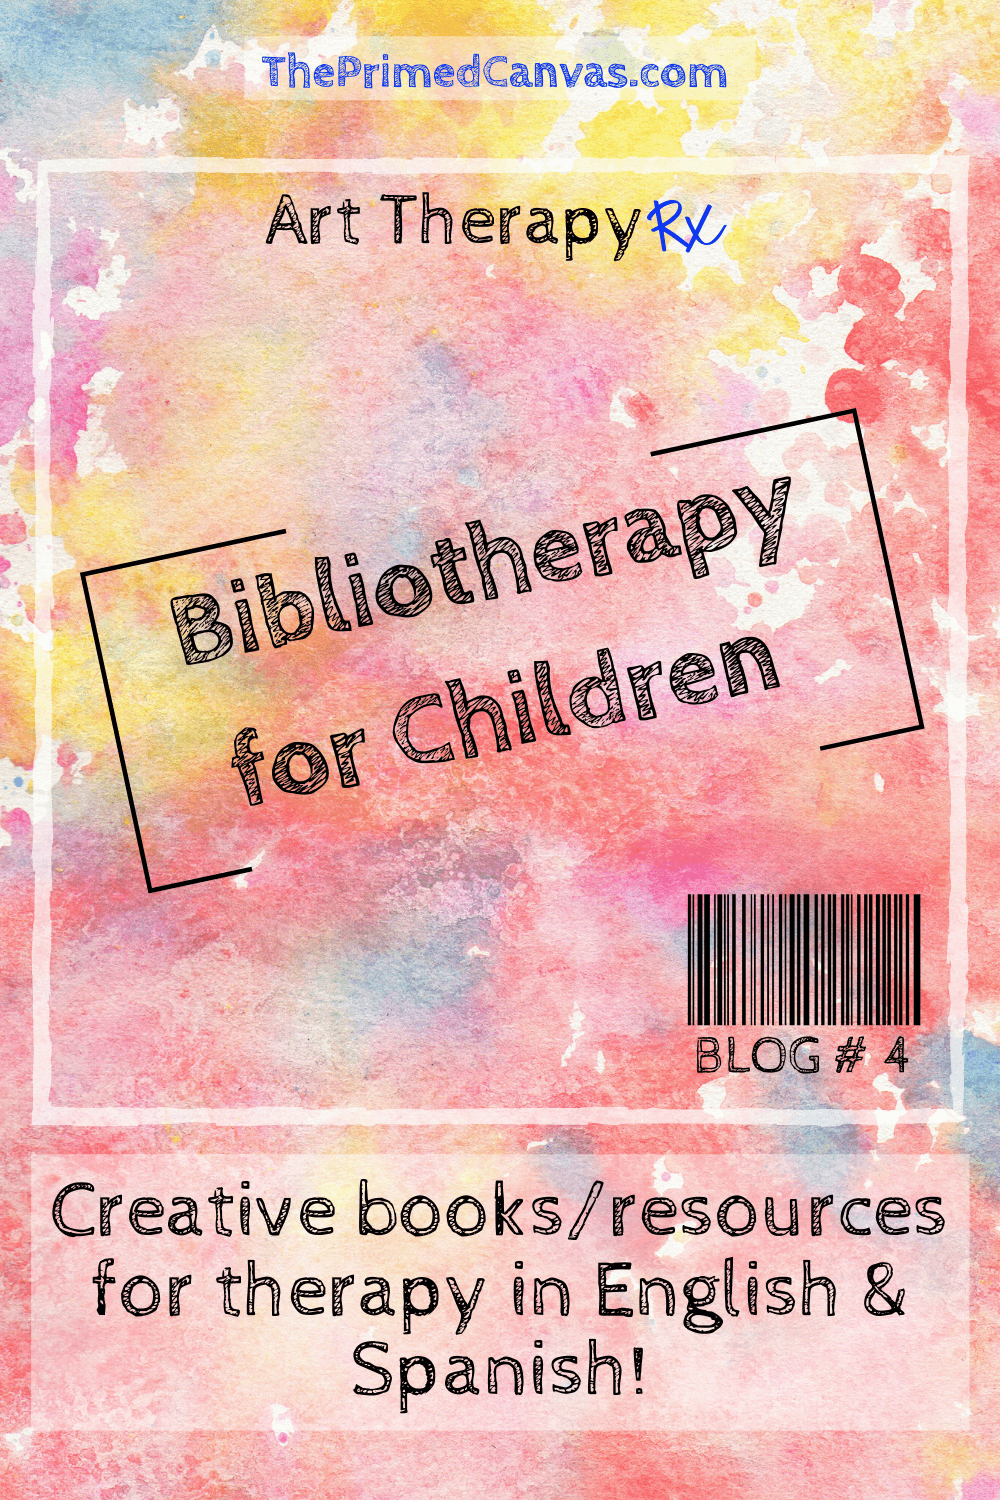 Needing creatives books and resources for your next session?! Check out this post for more information!